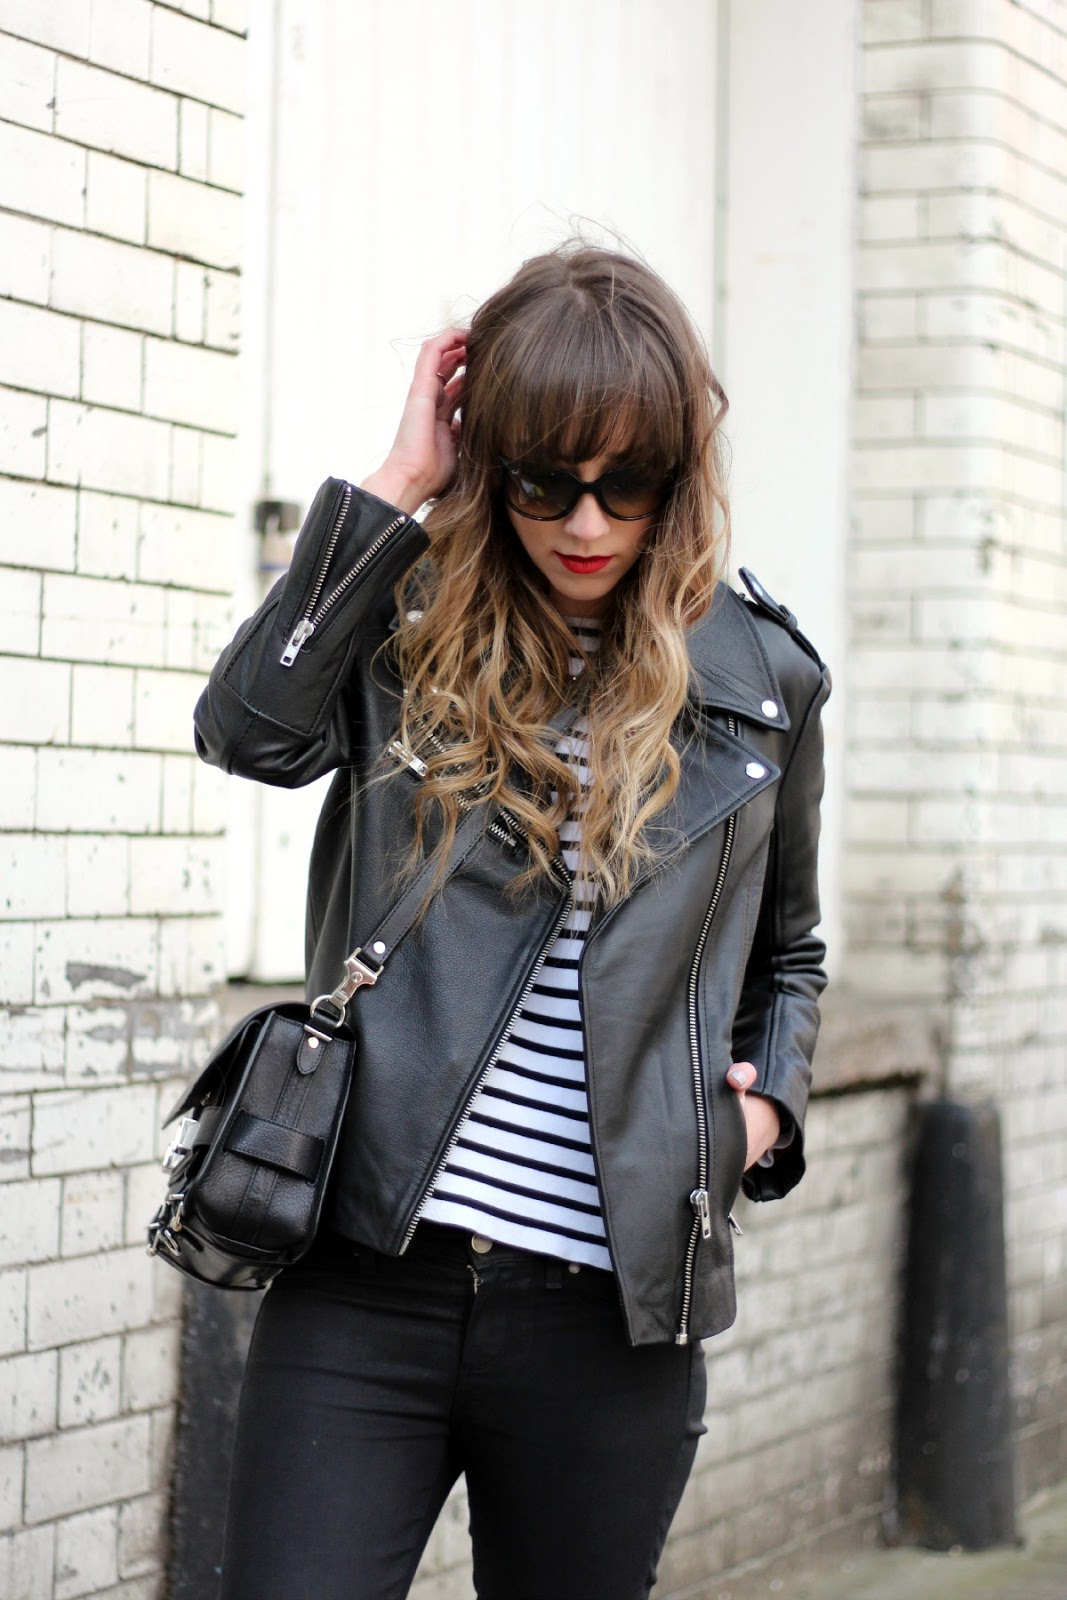 Leather jacket urban outfitters - Jacket Urban Outfitters Jumper Zara Jeans Paige Shoes Kenzo Bag Proenza Schouler Ps11 Sunglasses Rayban